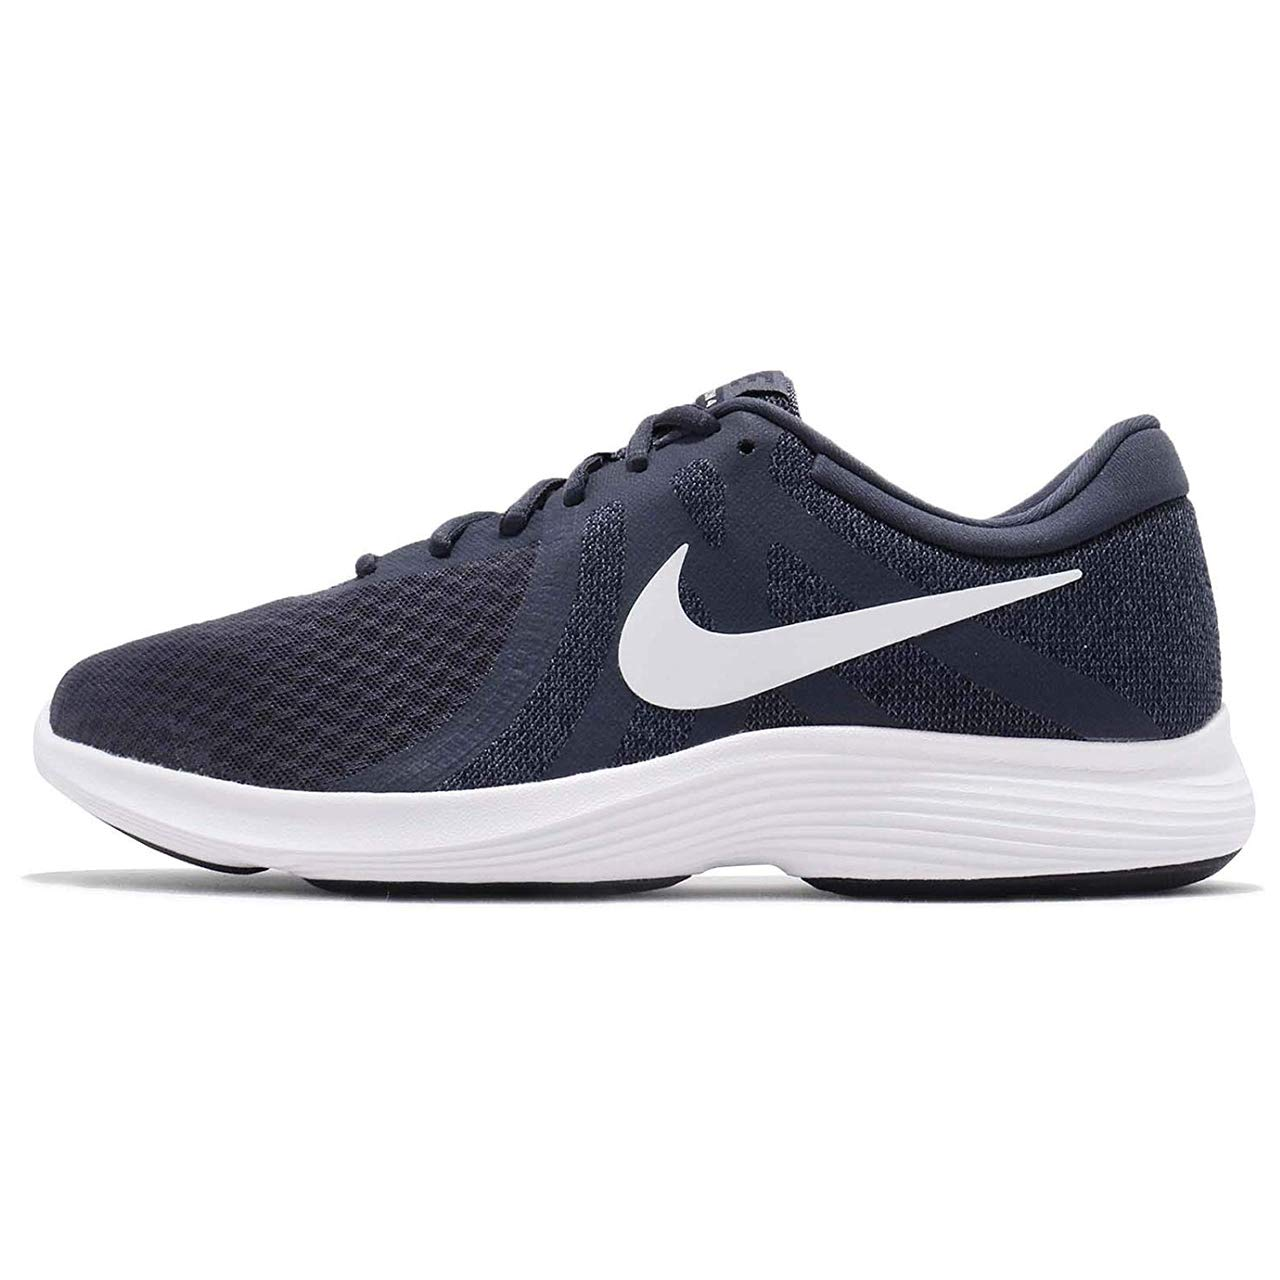 36920ce07aef NIKE Men s Revolution 4 Thunder Blue White Running Shoes (908988-402)  Buy  Online at Low Prices in India - Amazon.in